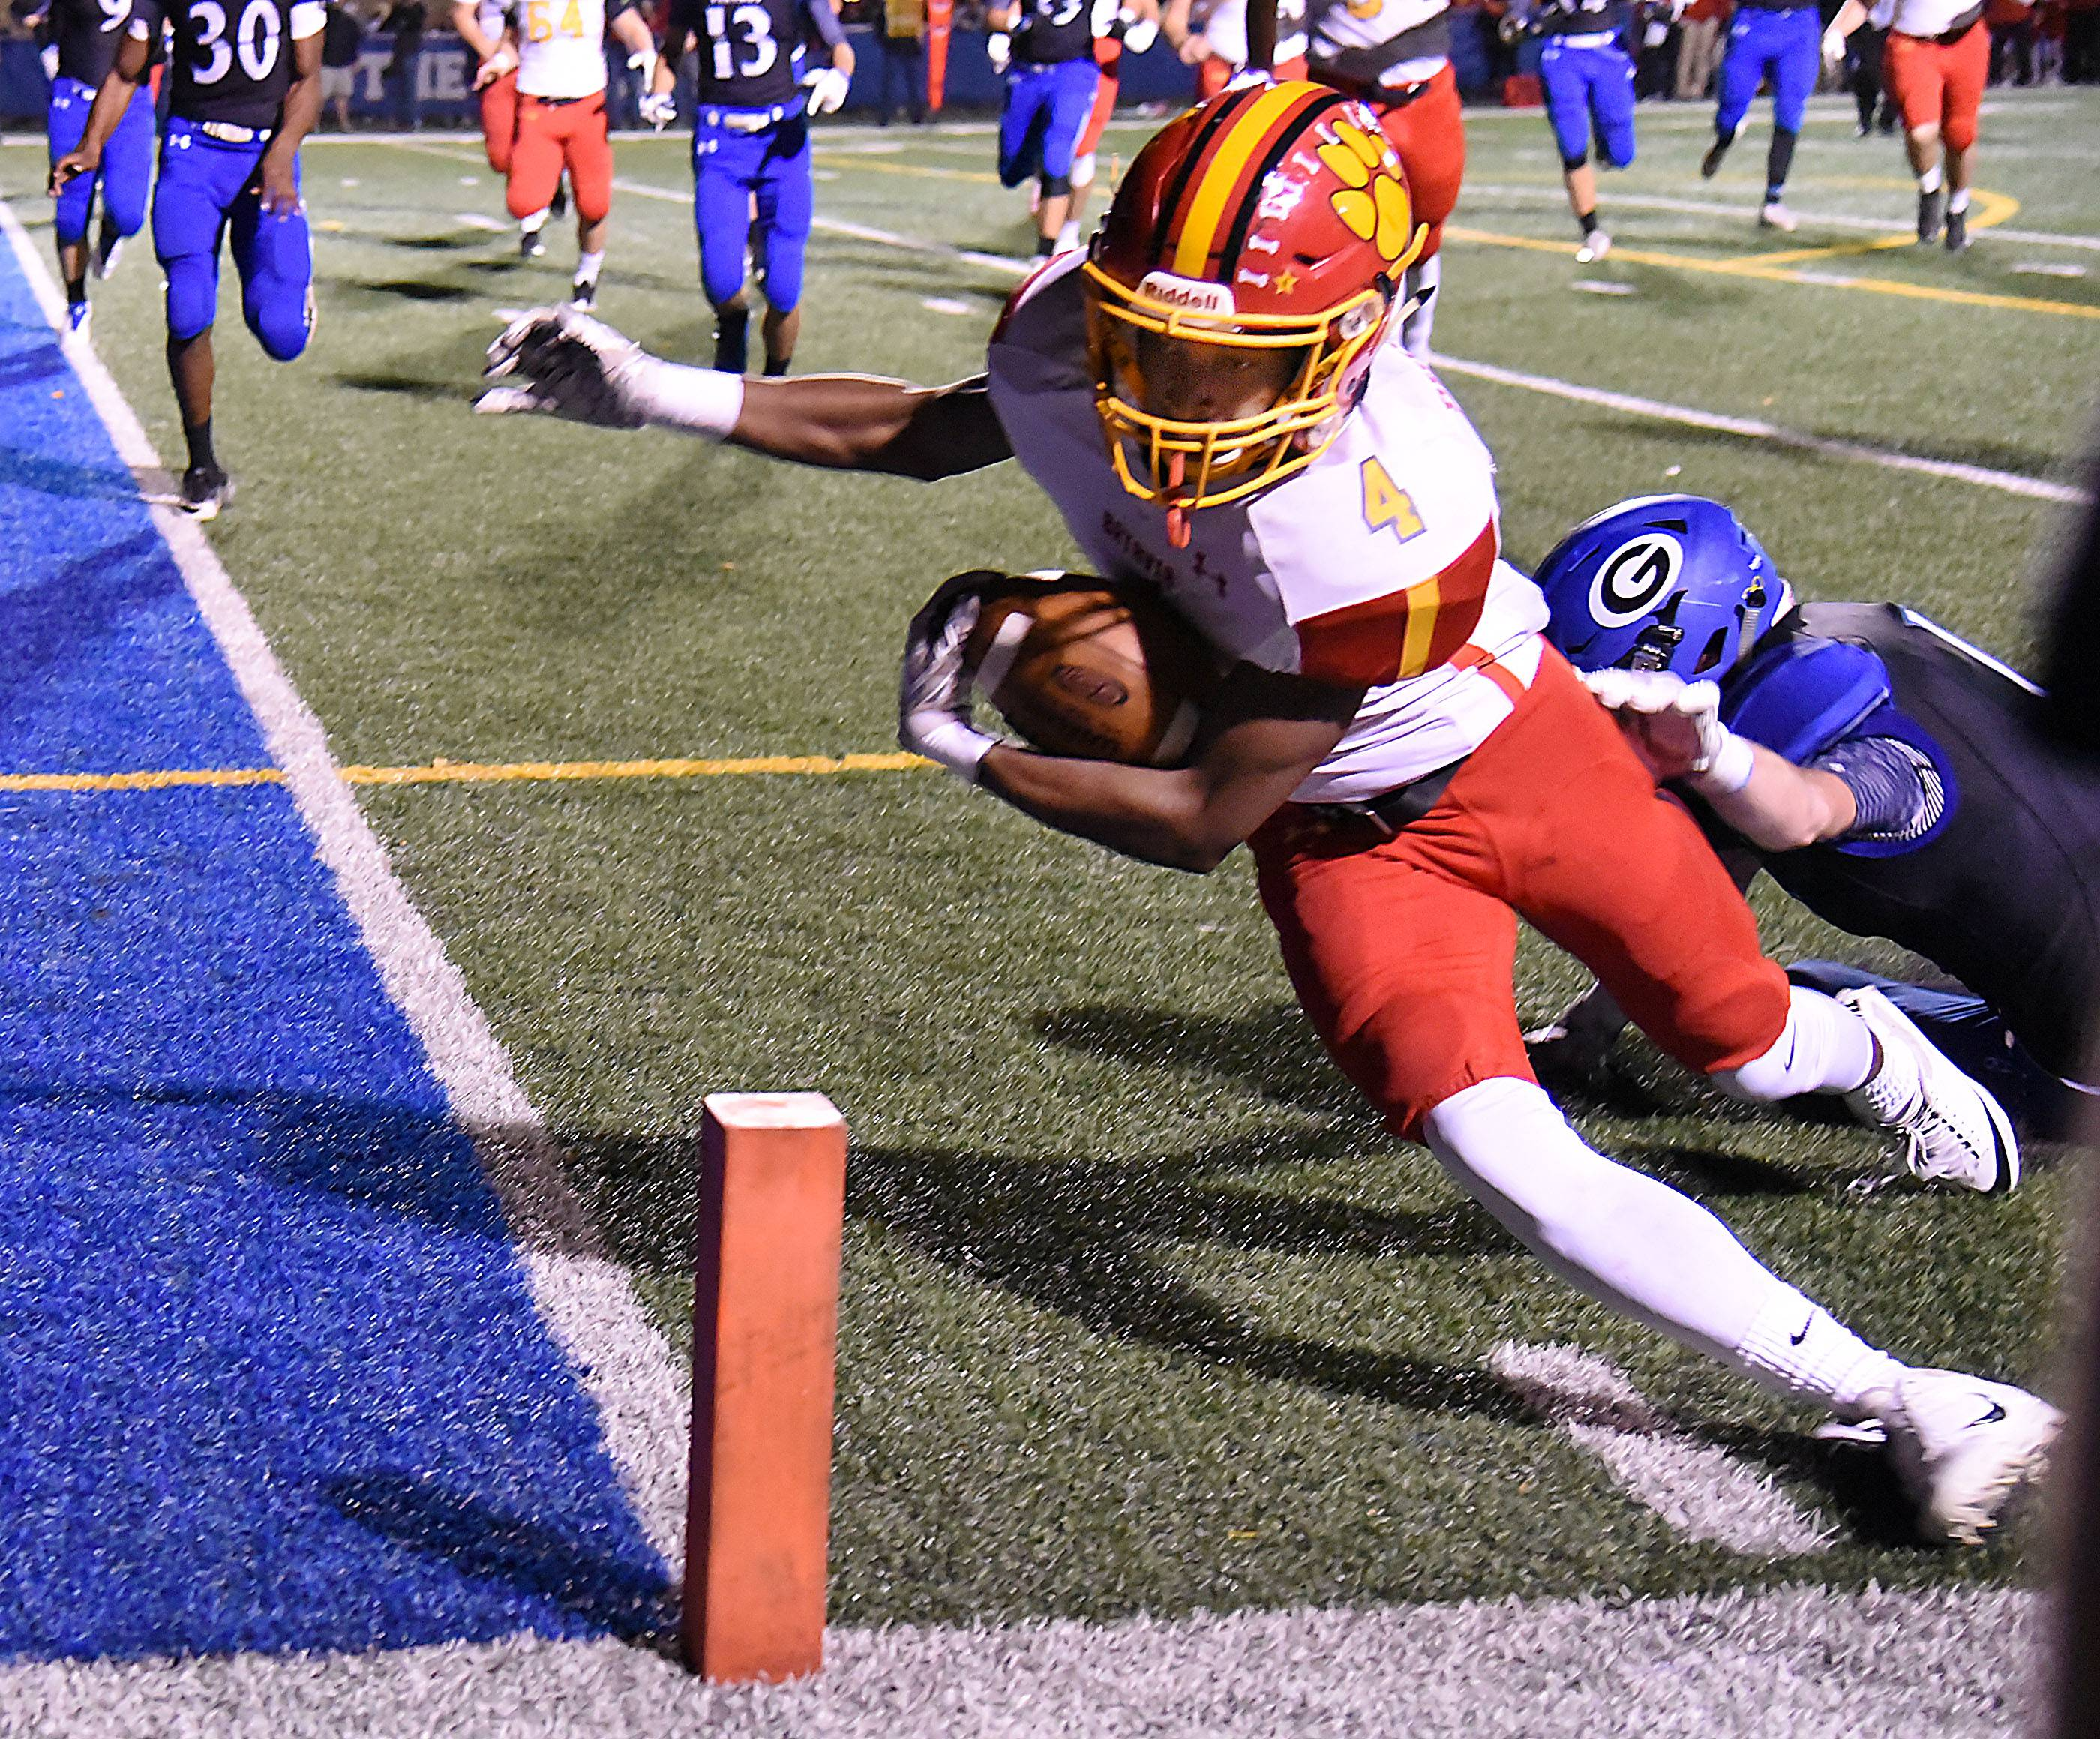 Batavia's Reggie Phillips gets the ball over the goal line before going out of bounds in the first half against Geneva Friday in Geneva.